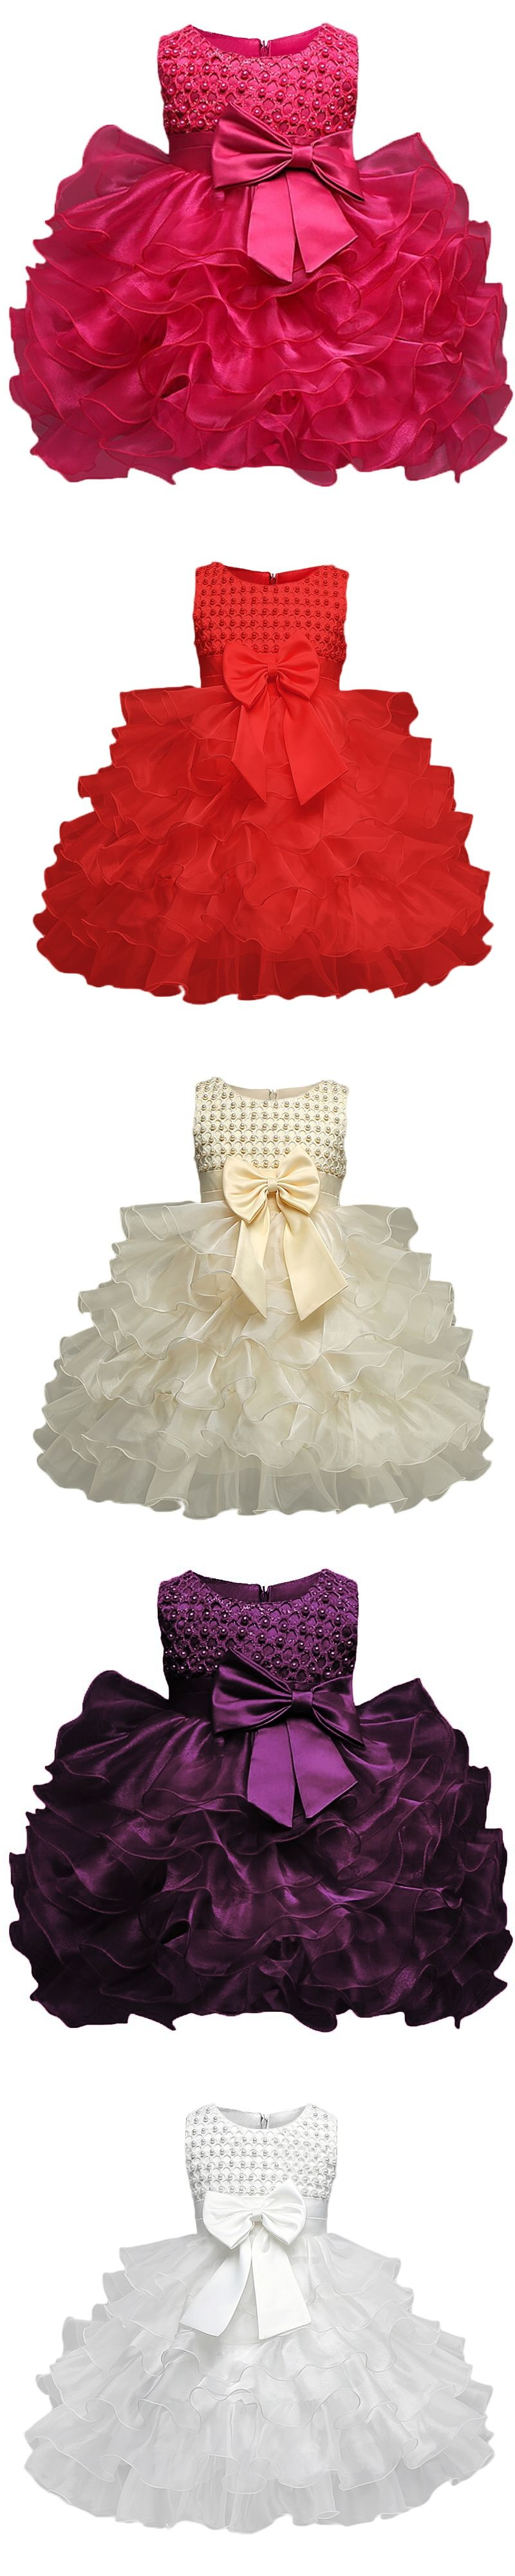 60b88590b Toddler Girl Christening Gown Dress Infant Baptism Clothes Kids ...